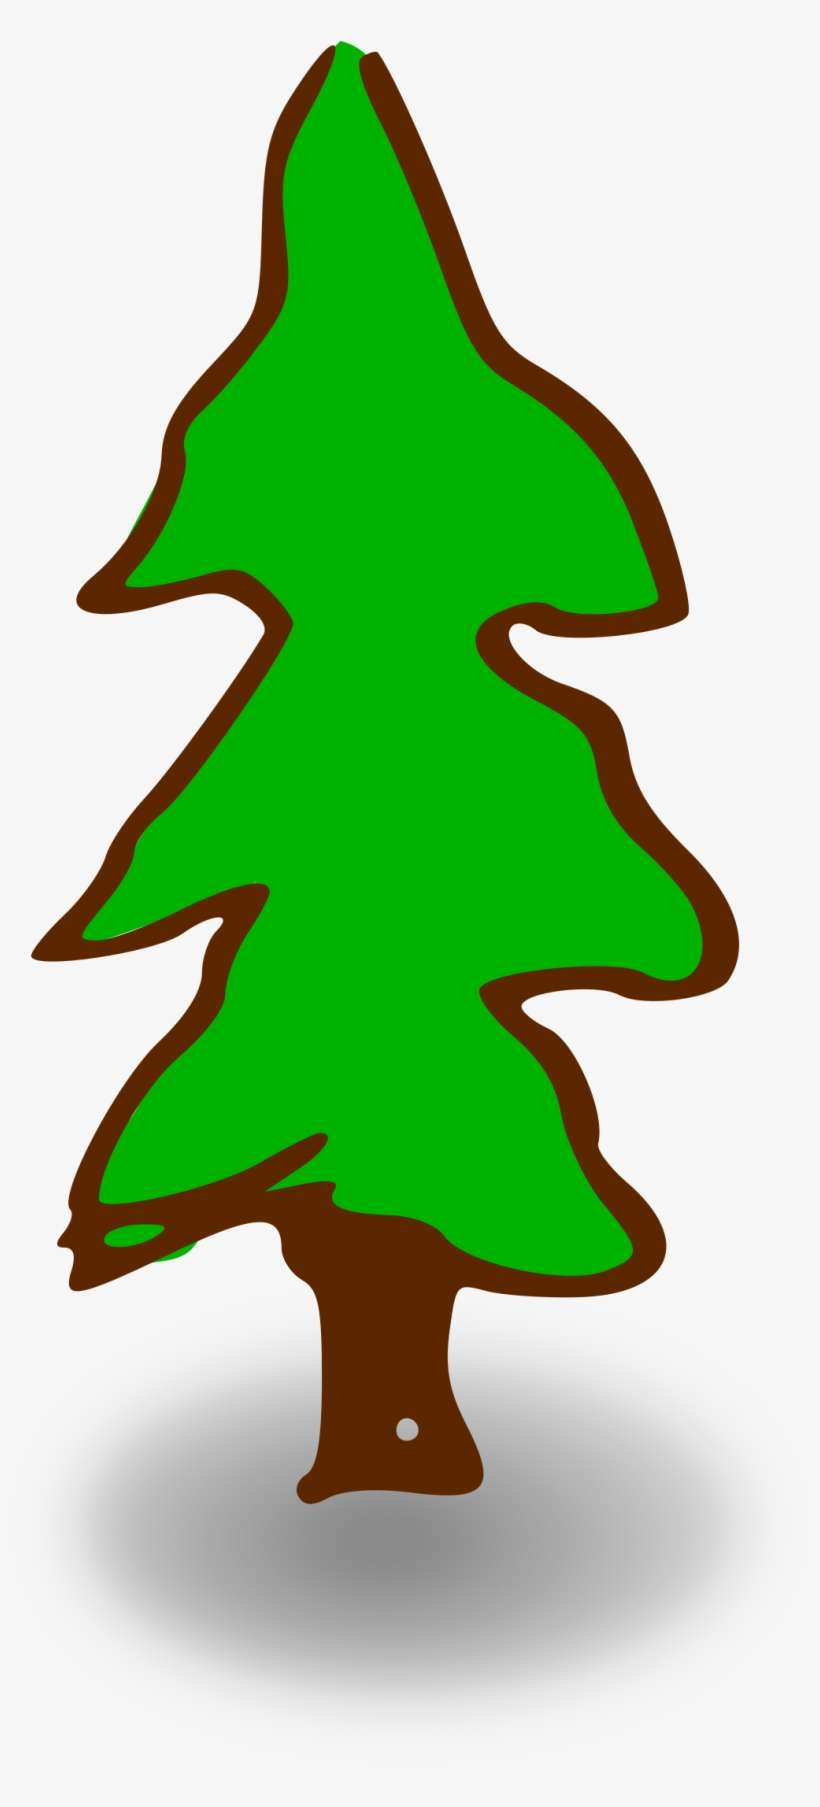 Forest Download Computer Icons Tree Drawing Cartoon Tree No Background Png Image Transparent Png Free Download On Seekpng Cartoon cute country seamless horizontal landscape, nature vector. forest download computer icons tree